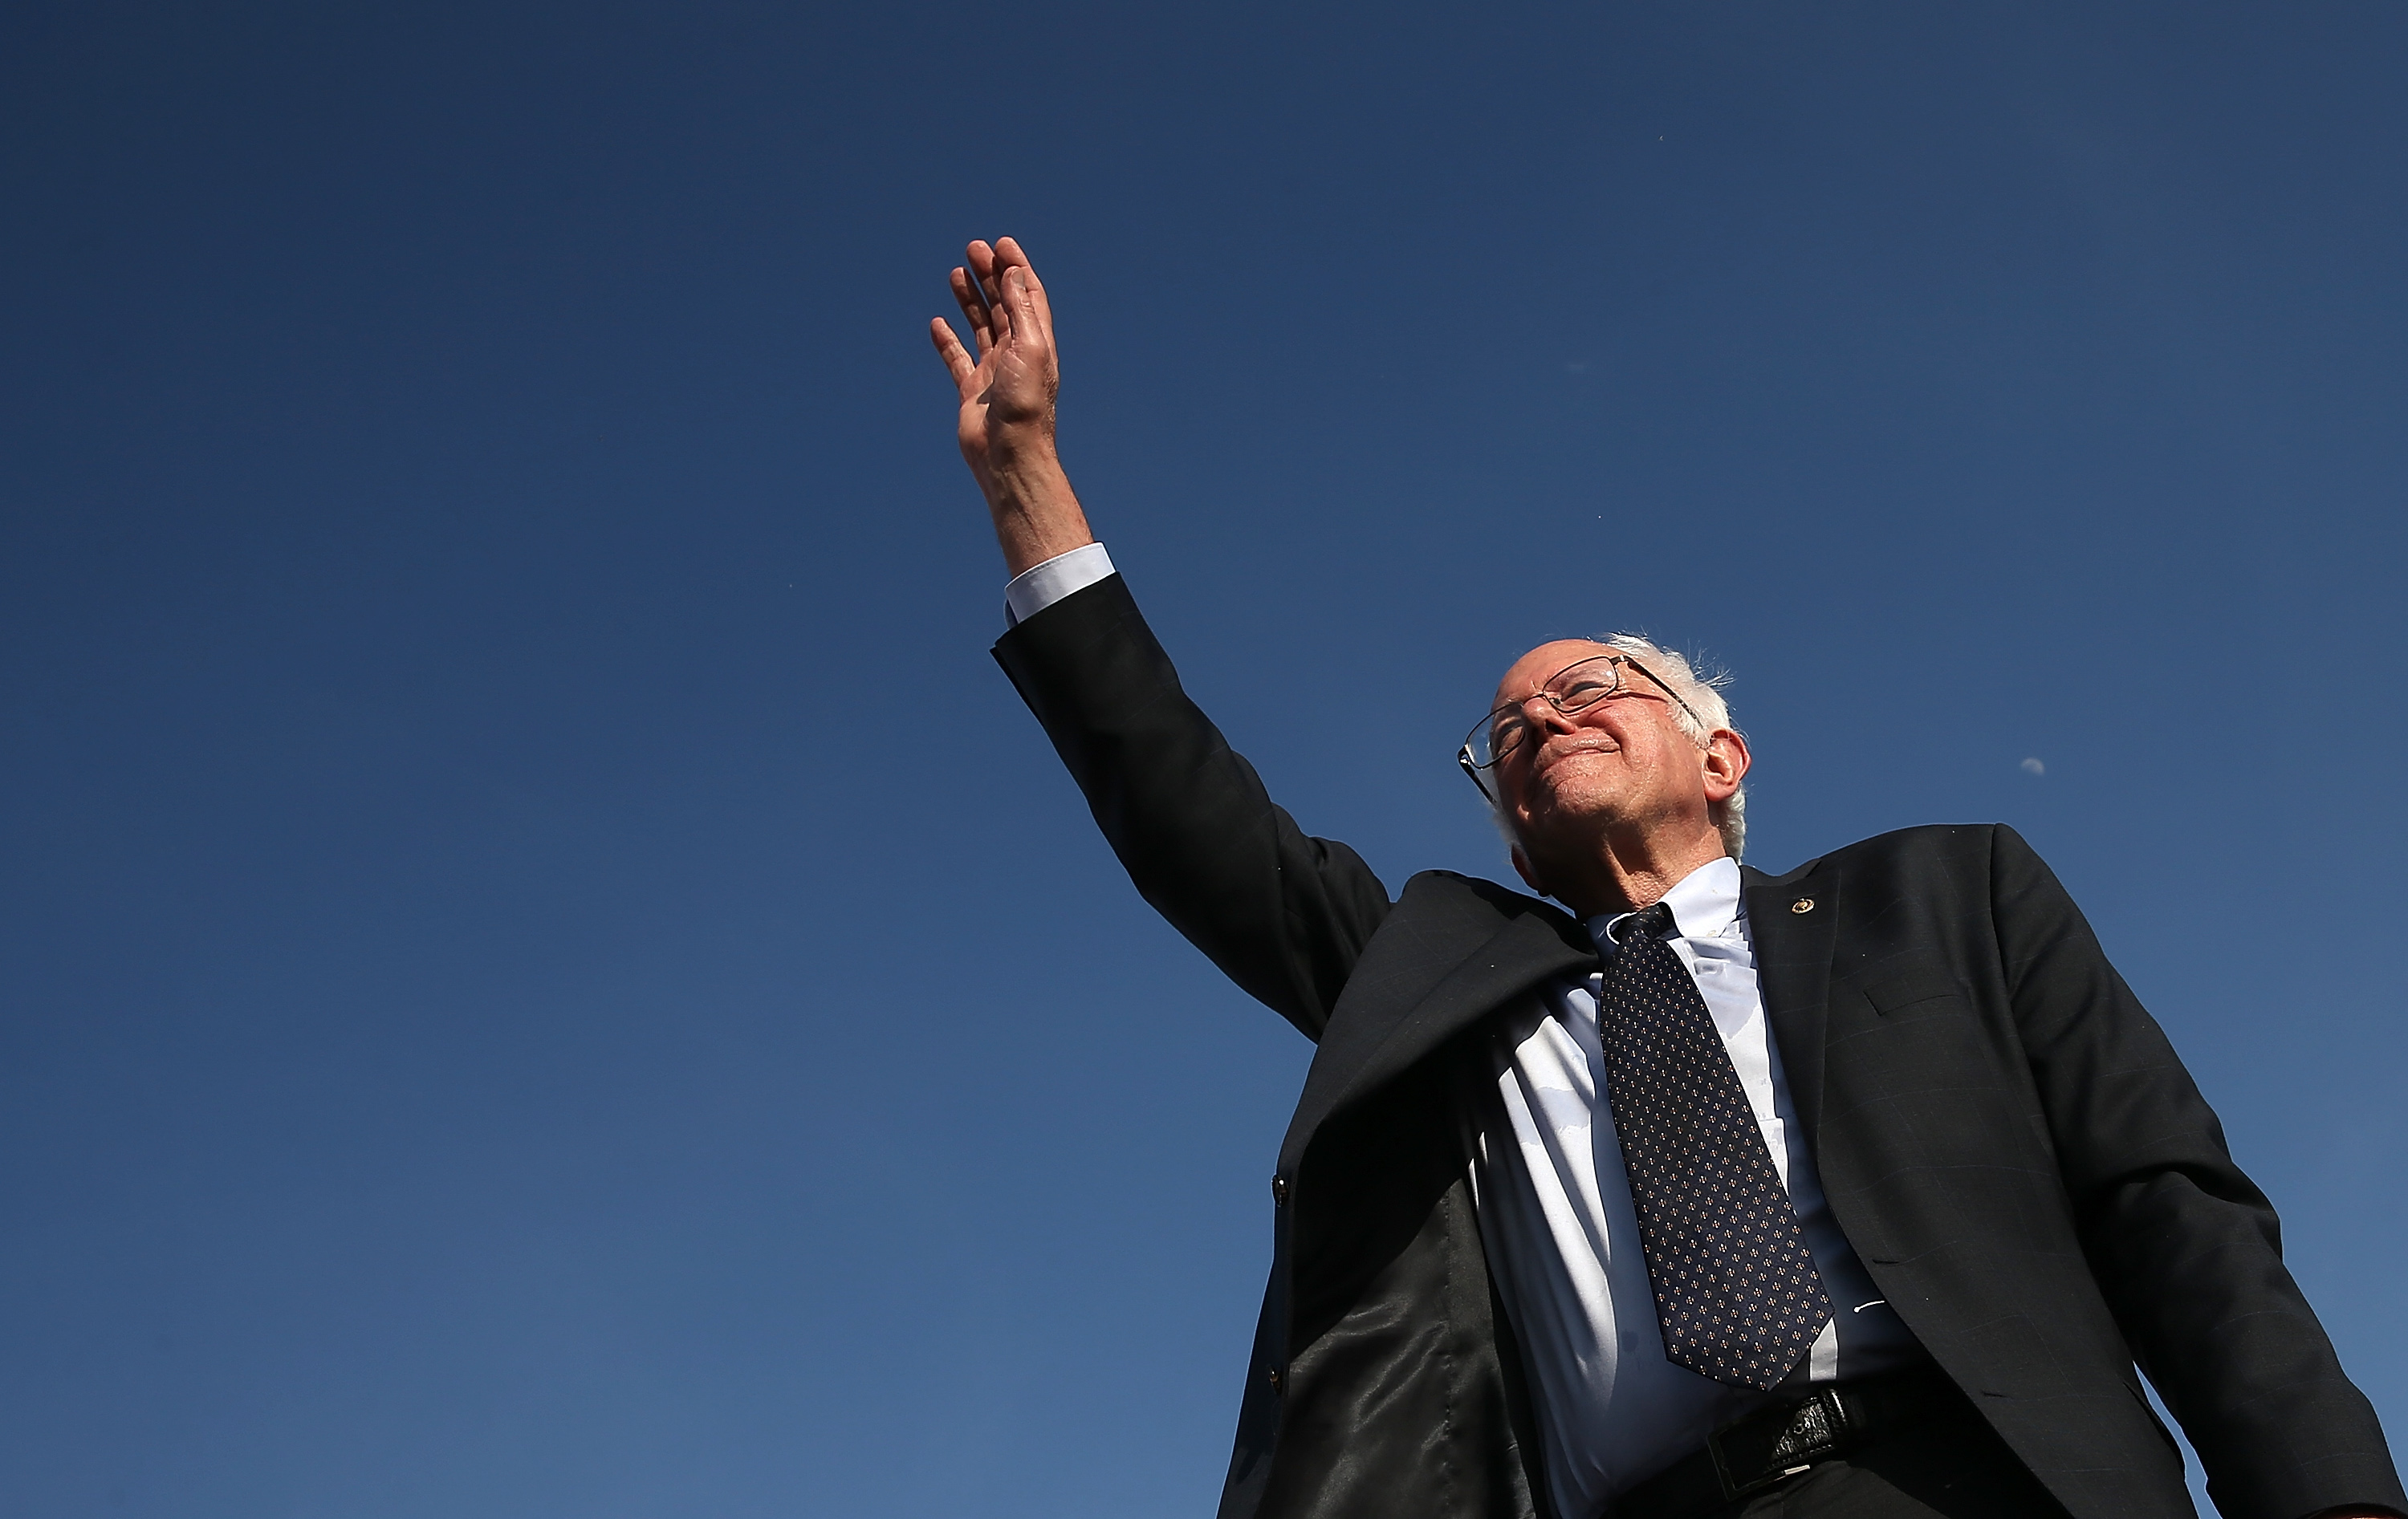 BURLINGTON, VT - MAY 26:  U.S. Sen. Bernie Sanders (I-VT) waves to supporters after officially announcing his candidacy for the U.S. presidency during an event at Waterfront Park May 26, 2015 in Burlington, Vermont. Sanders will run as a Democrat in the presidential election and is former Secretary of State Hillary ClintonÕs first challenger for the Democratic nomination.  (Photo by Win McNamee/Getty Images)